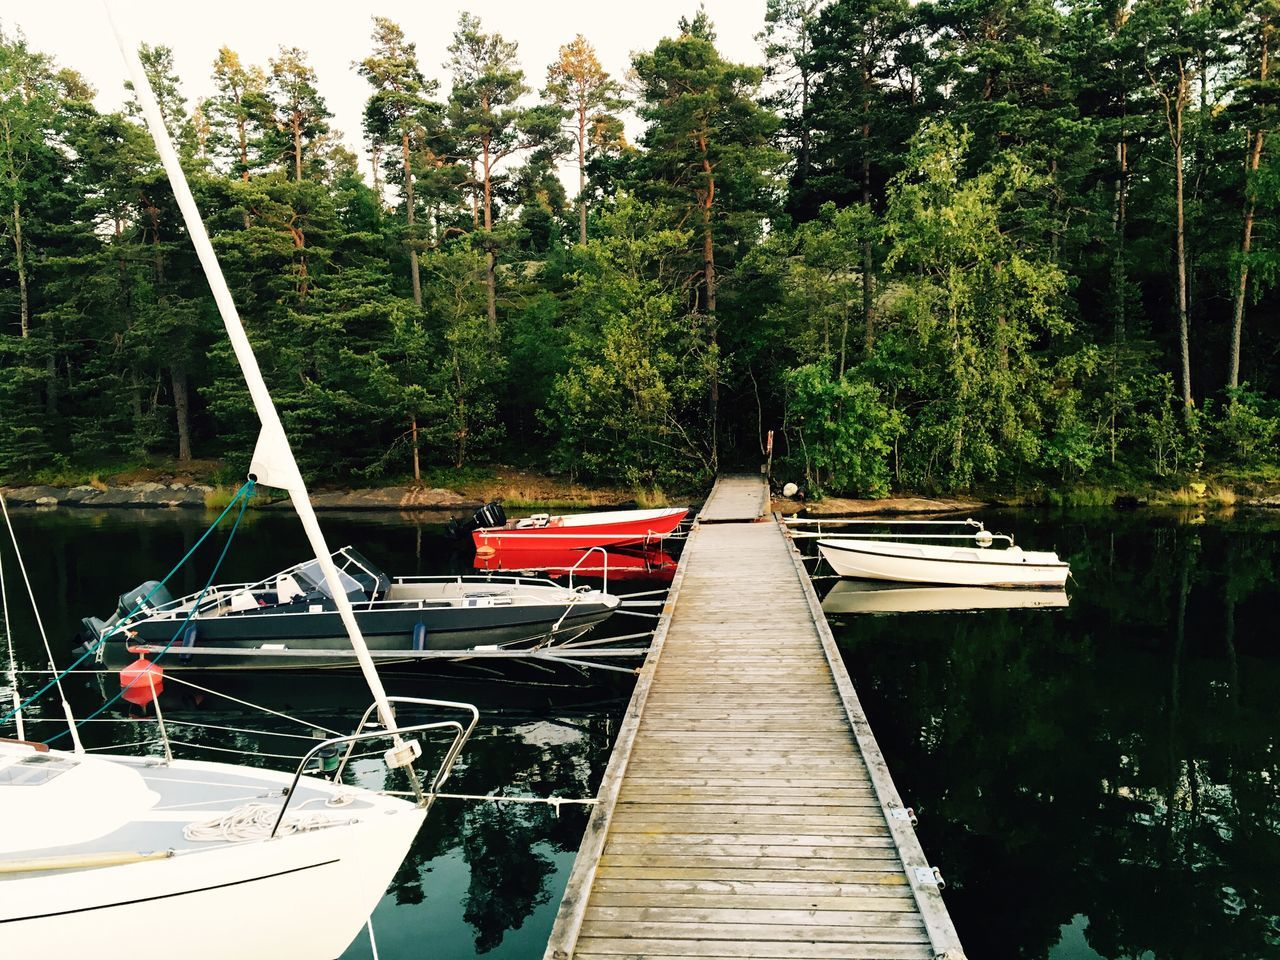 Boat Boats Relaxing Nature Bridge Fishing Fishing Boat Fishing Time Vacation Water Östersjön Küsten Coast